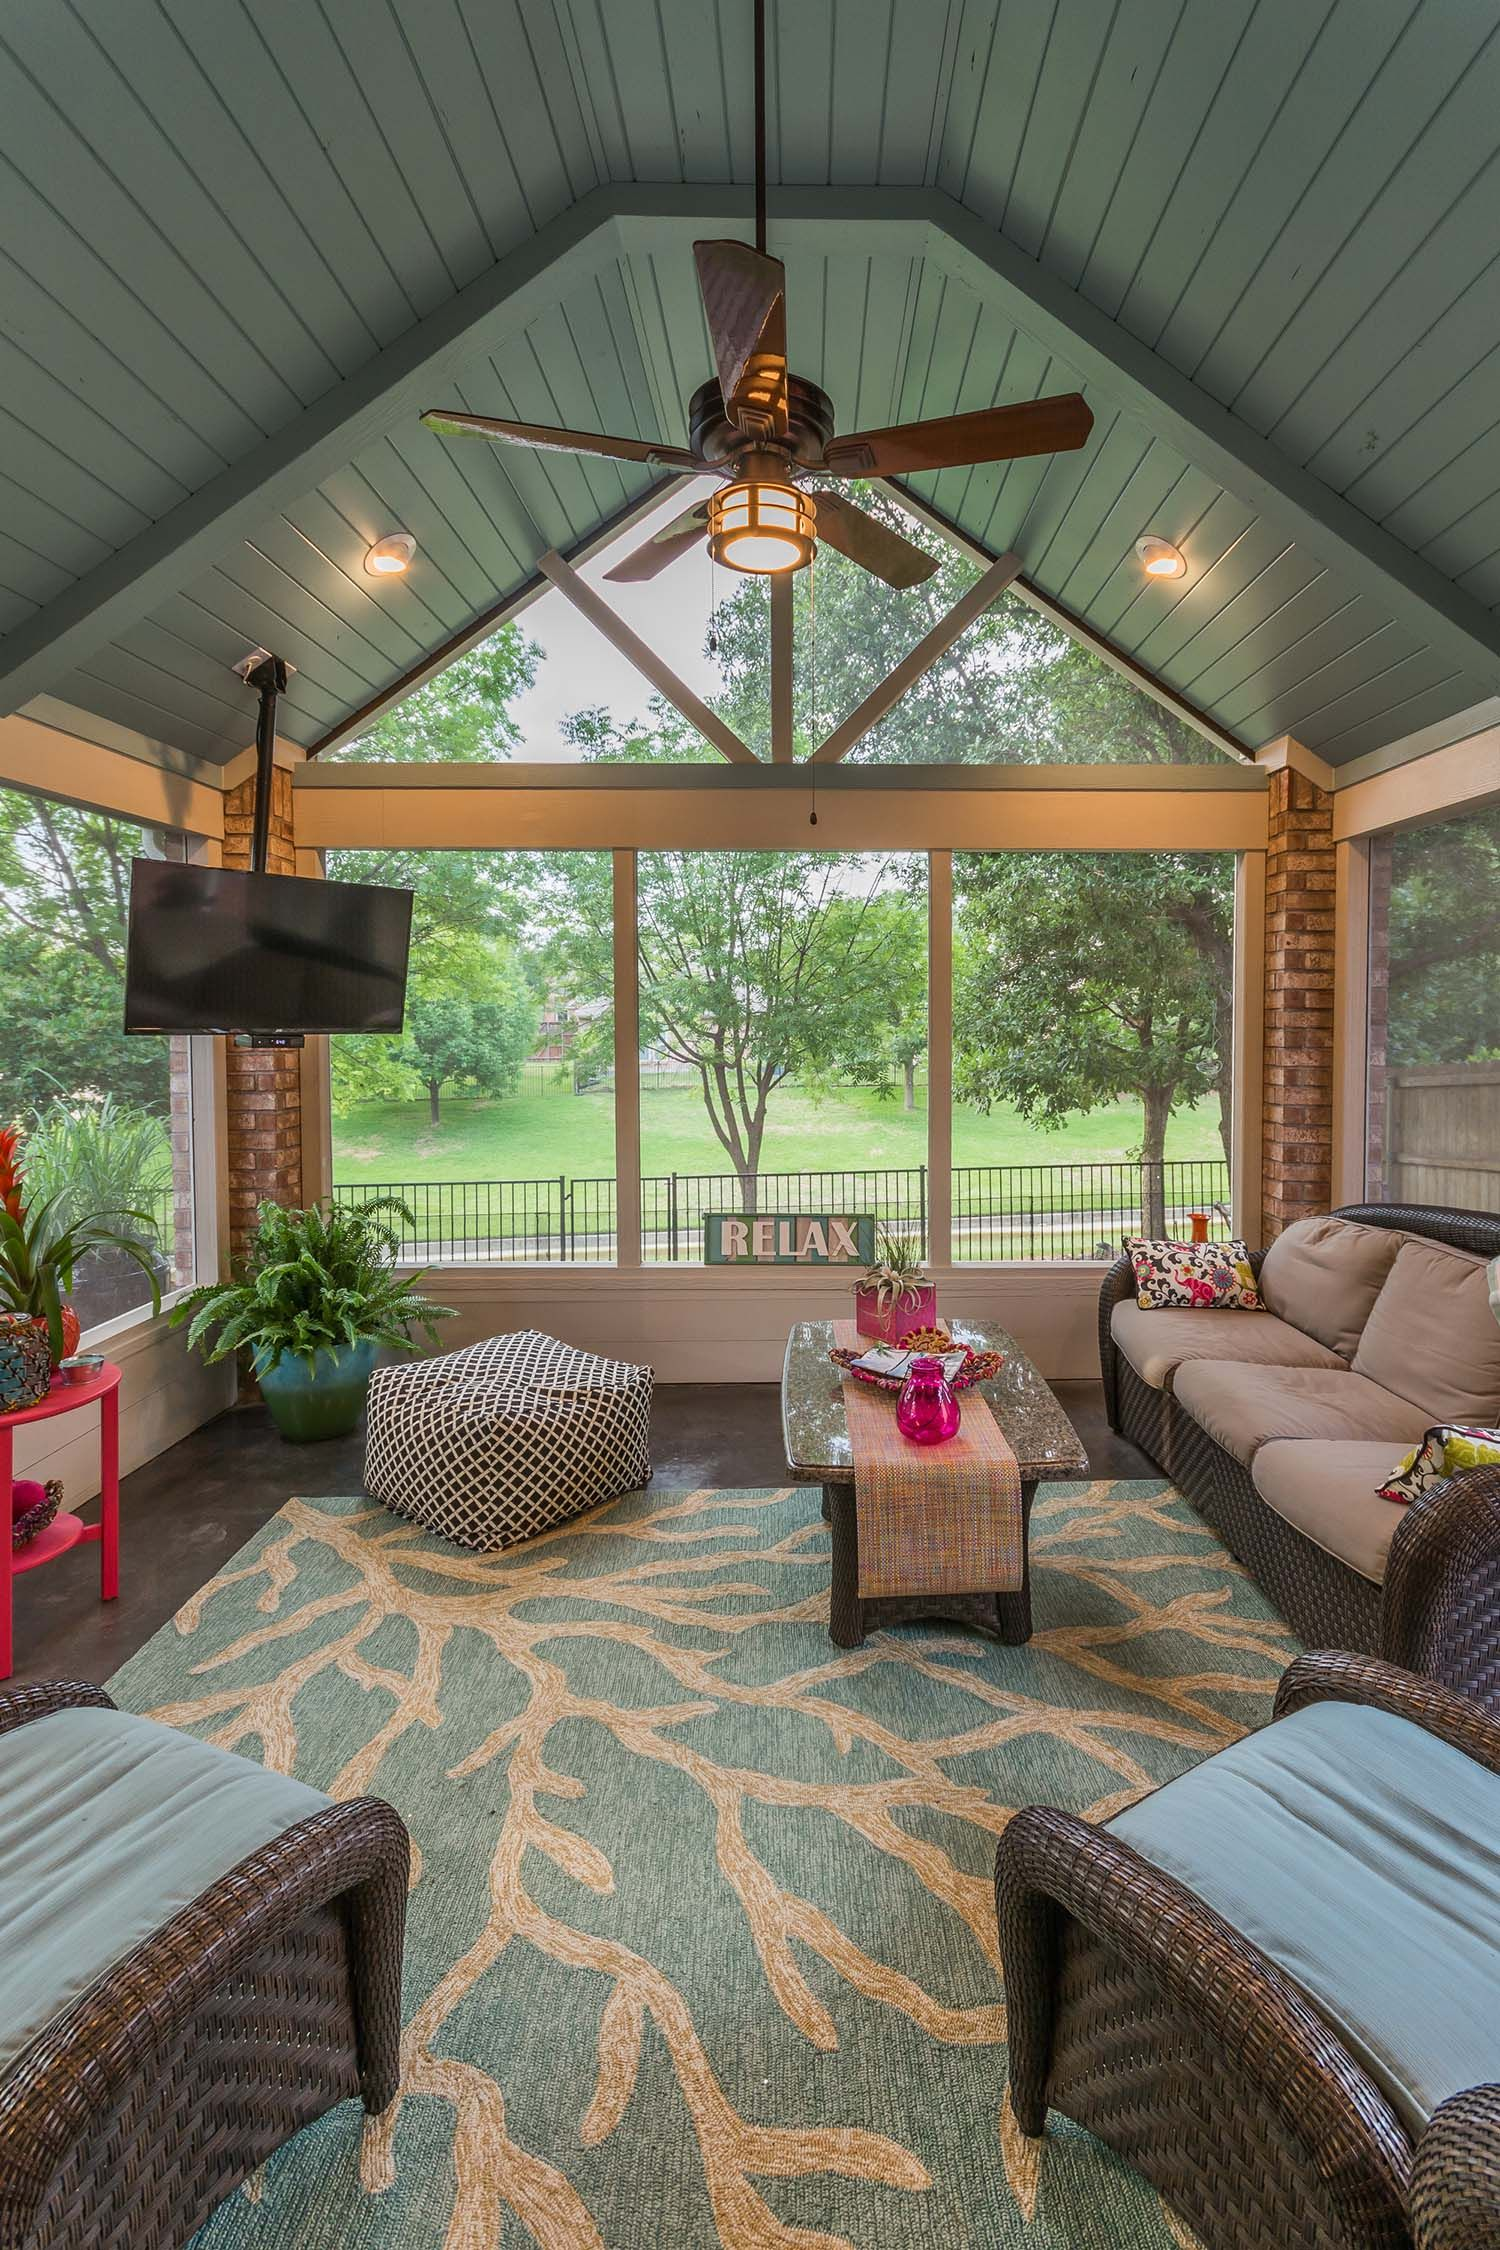 45 Amazingly Cozy And Relaxing Screened Porch Design Ideas Sunroom Designs Screened Porch Designs Sunroom Decorating